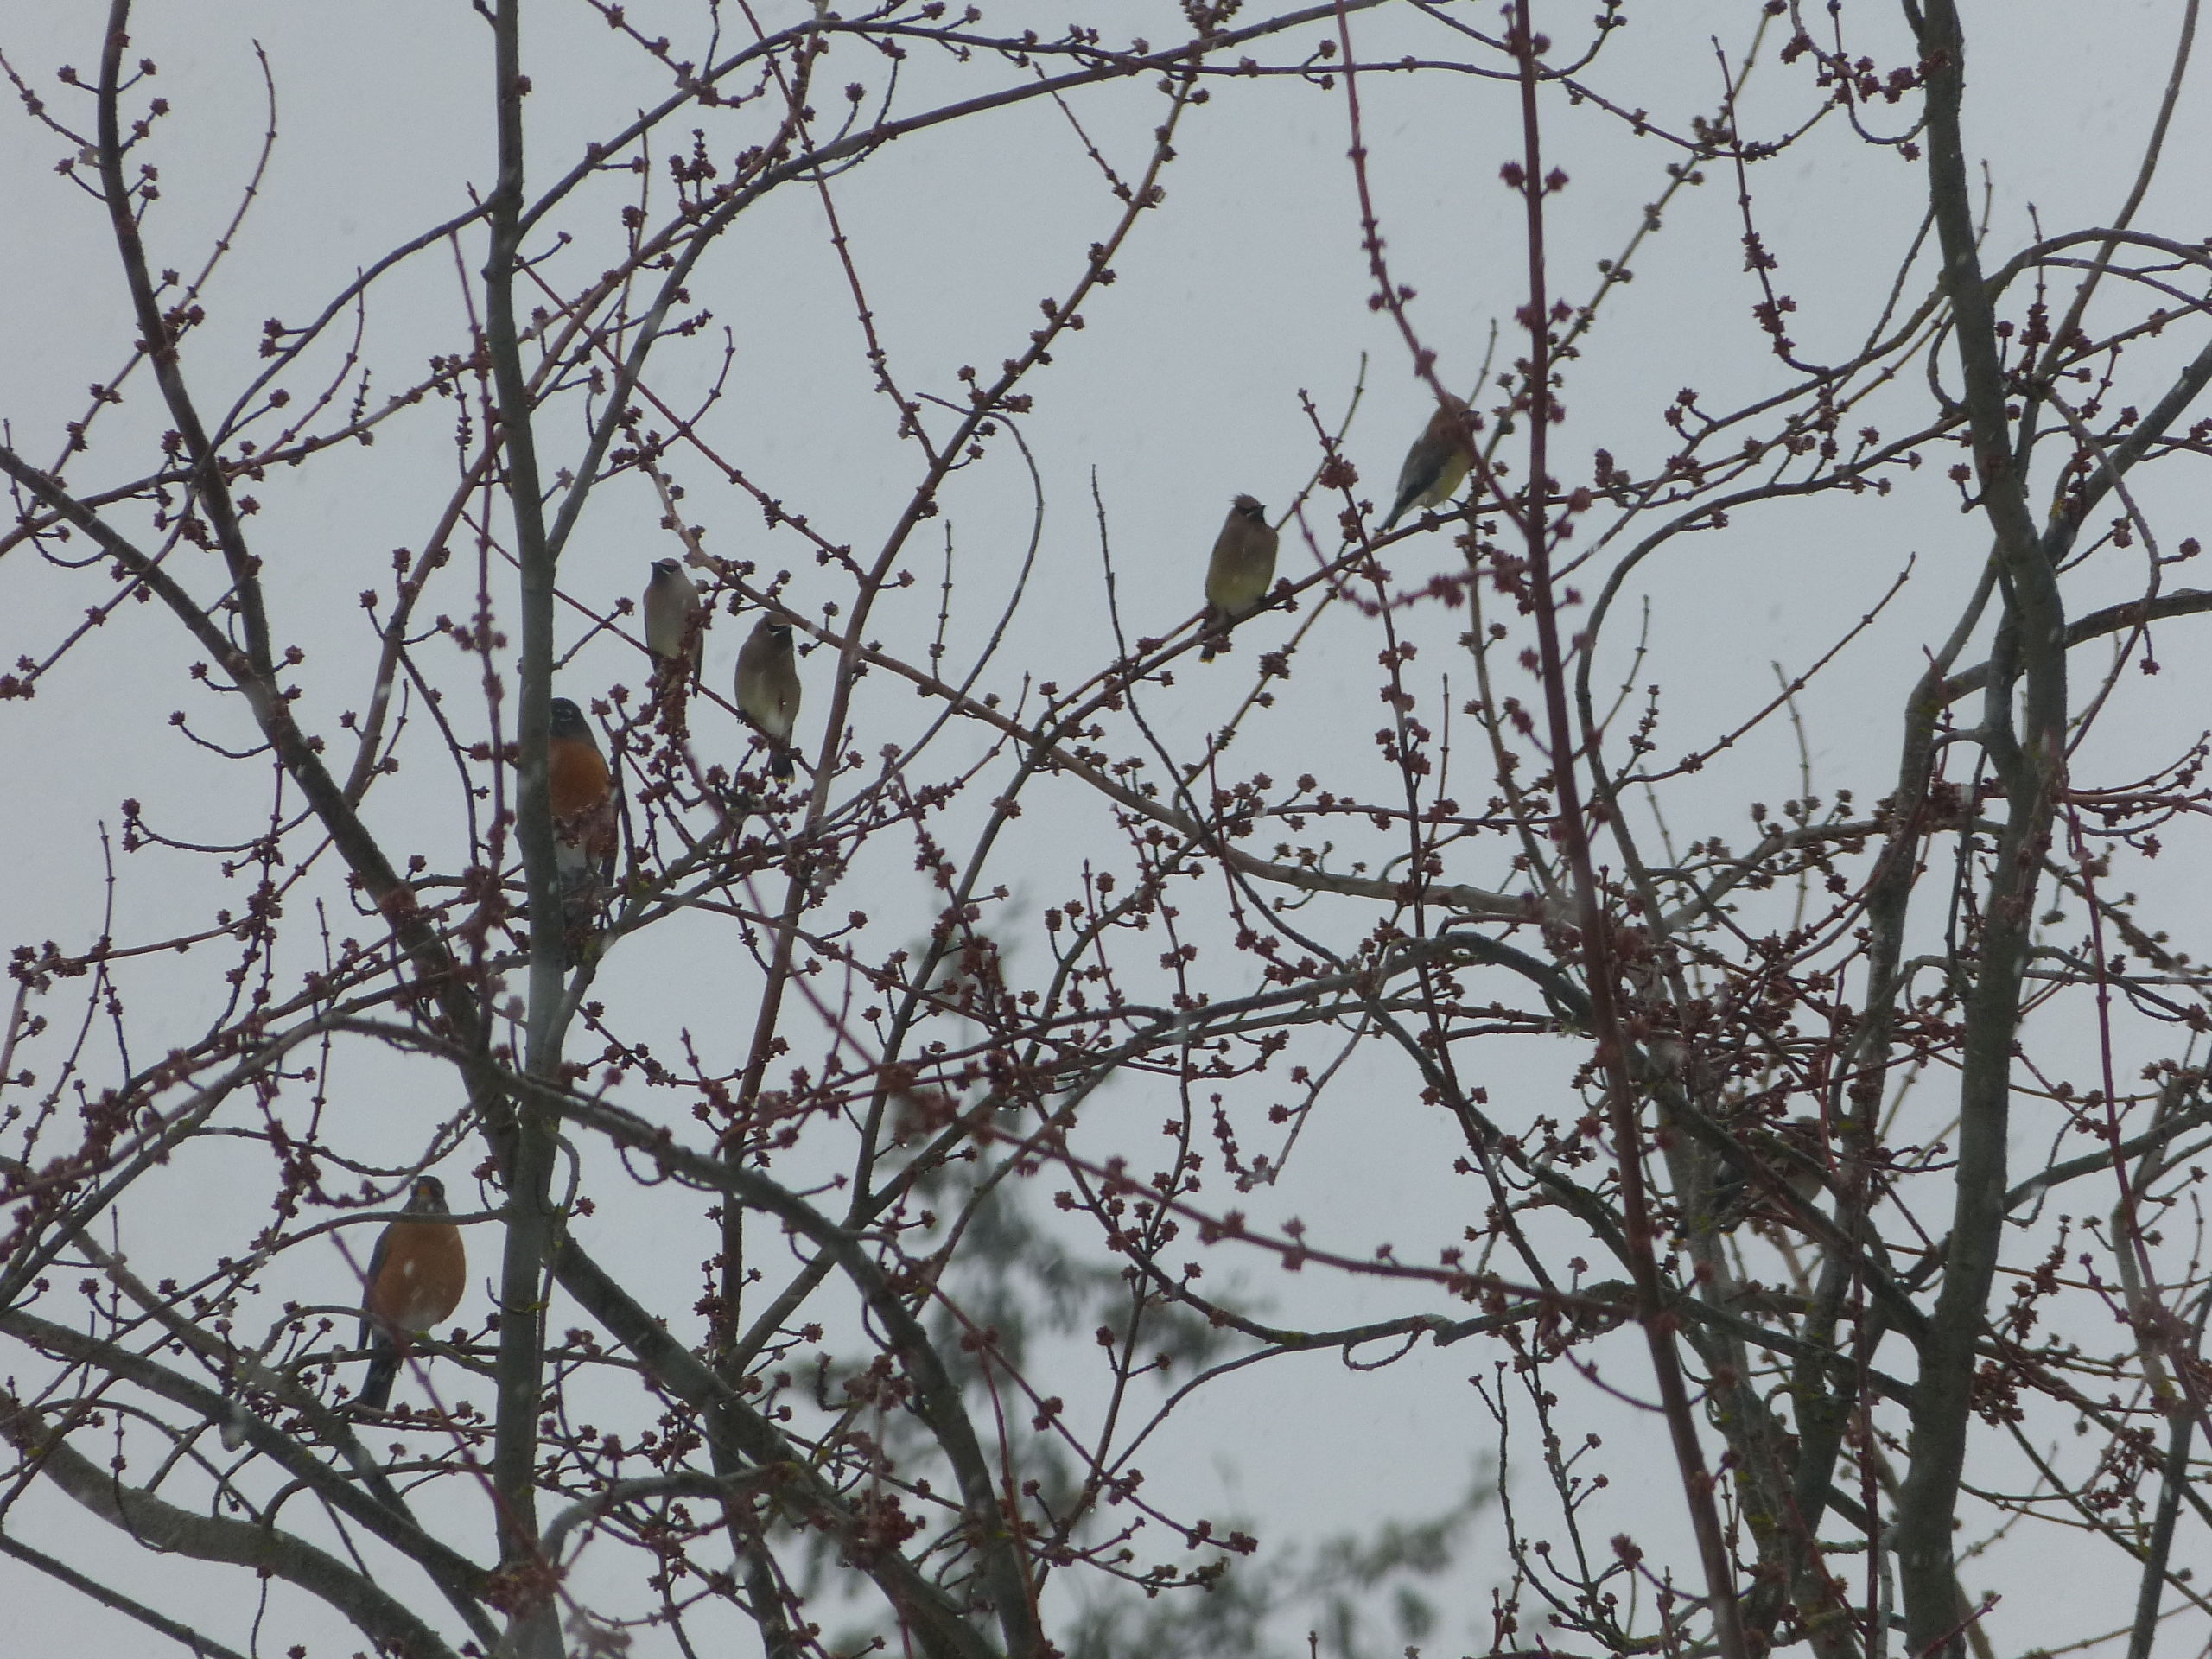 Cedar waxwings join a flock of robins.